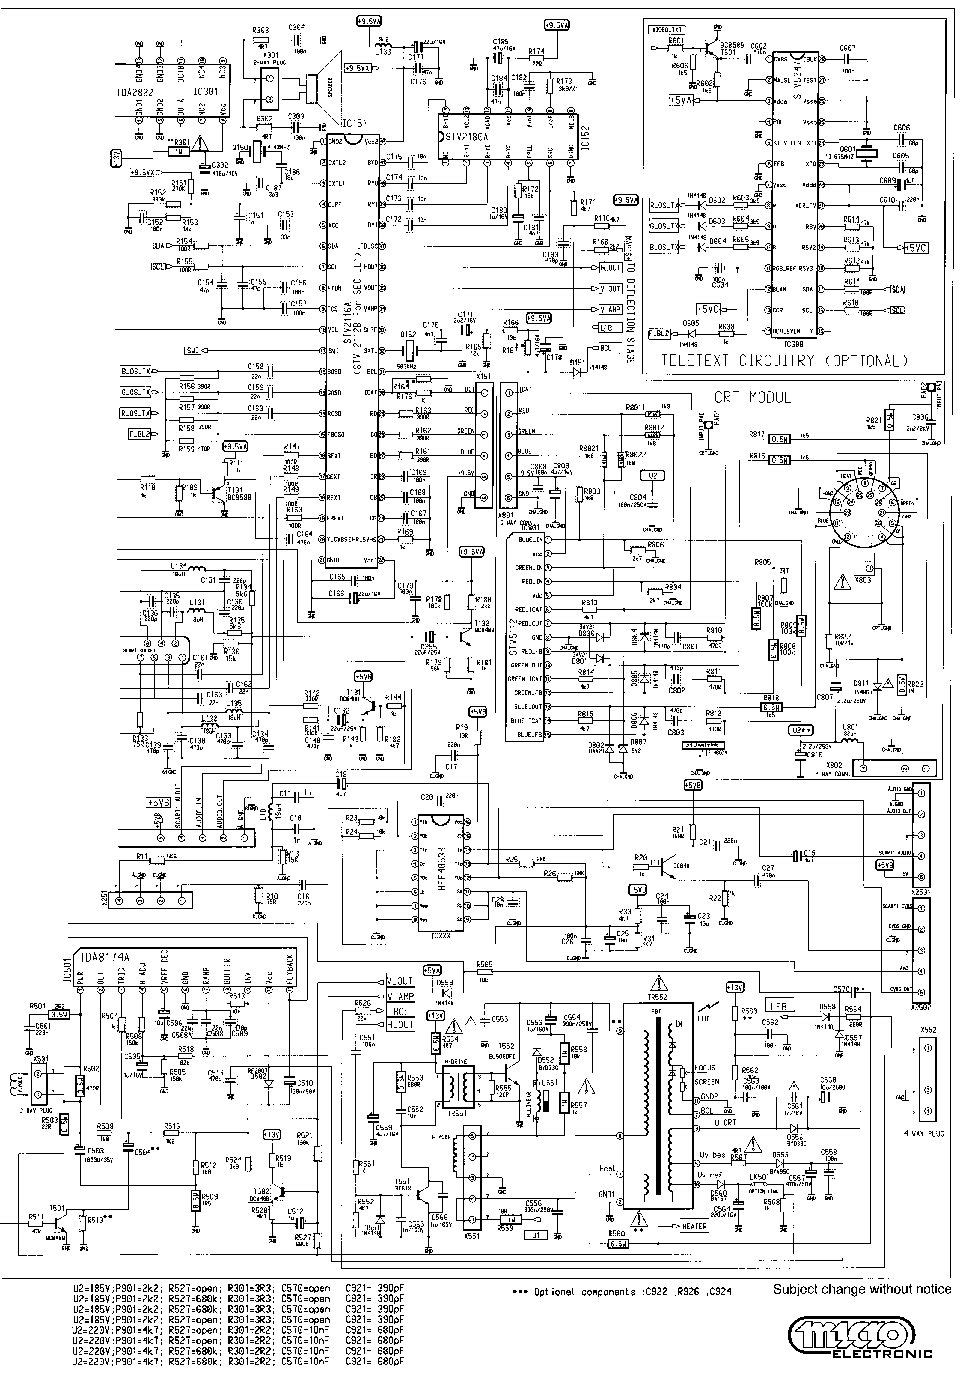 BEKO CH12.1 TV Service Manual download, schematics, eeprom